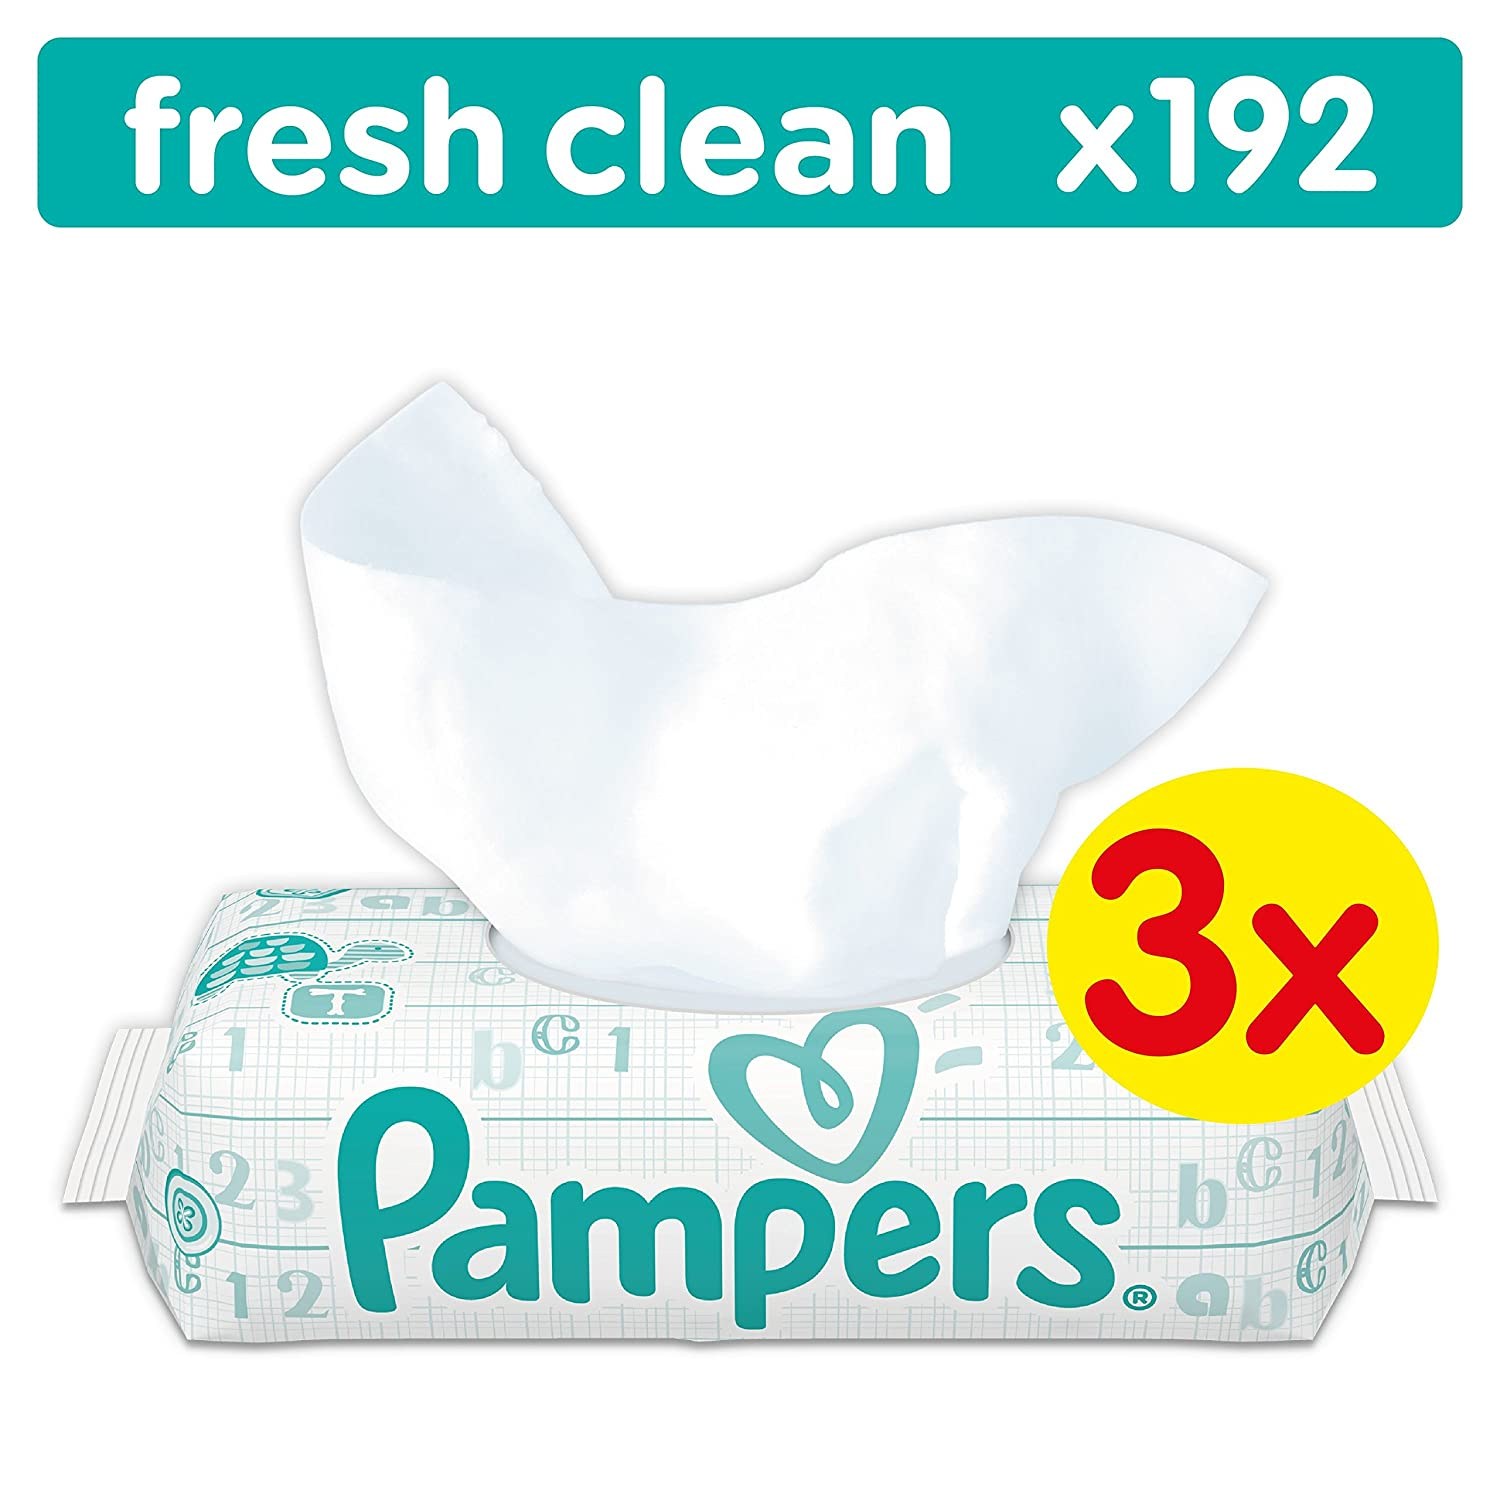 3 x 3 x 64 St/ück Pampers Fresh Clean Feuchtt/ücher 3er Pack